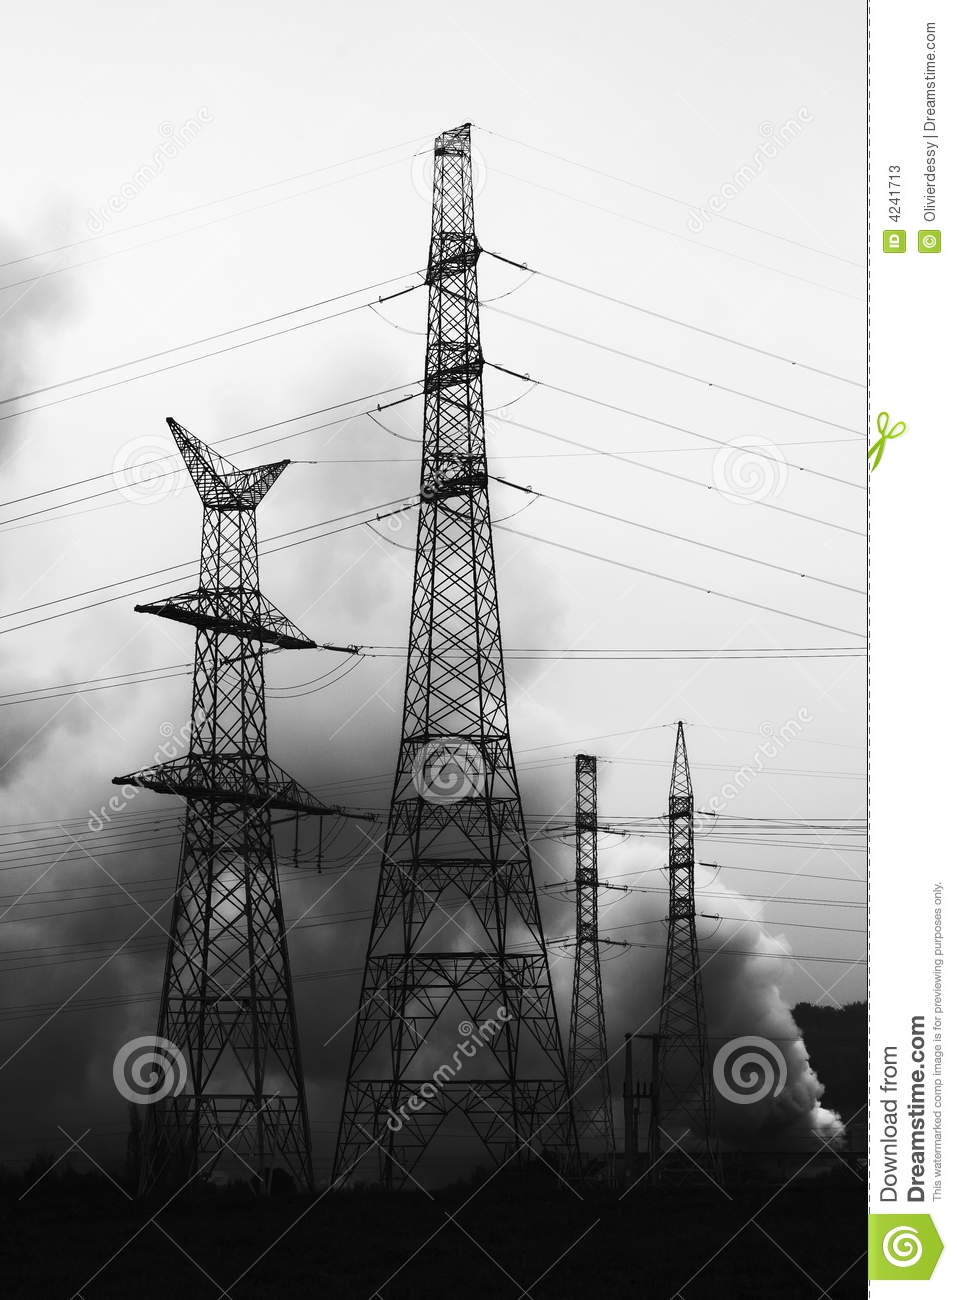 Fire In Electric Plant Stock Image Image Of Fire Explosion 4241713